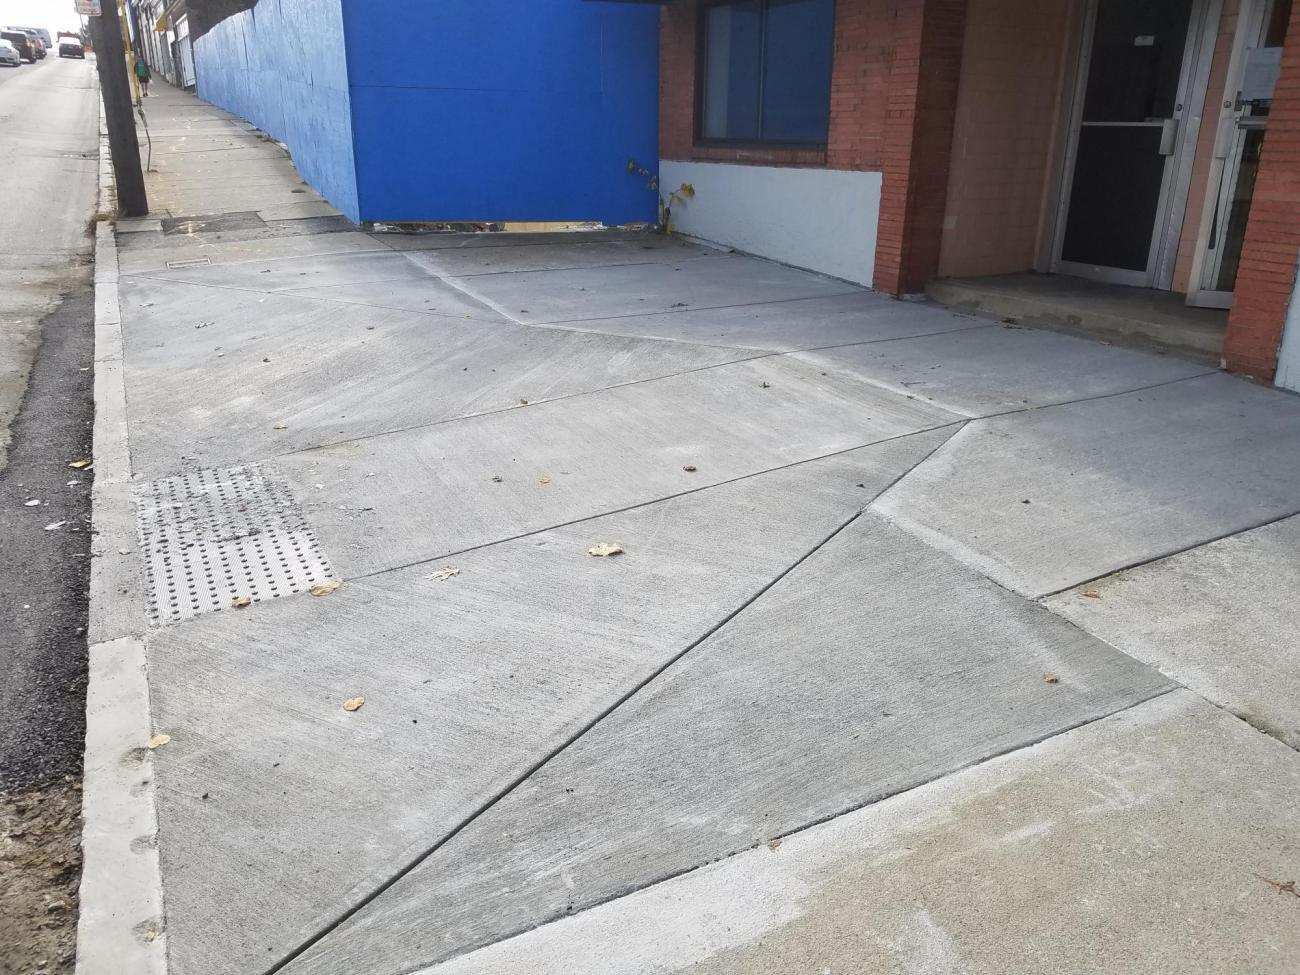 The new accessible ramp on Newport Ave (October 2019)